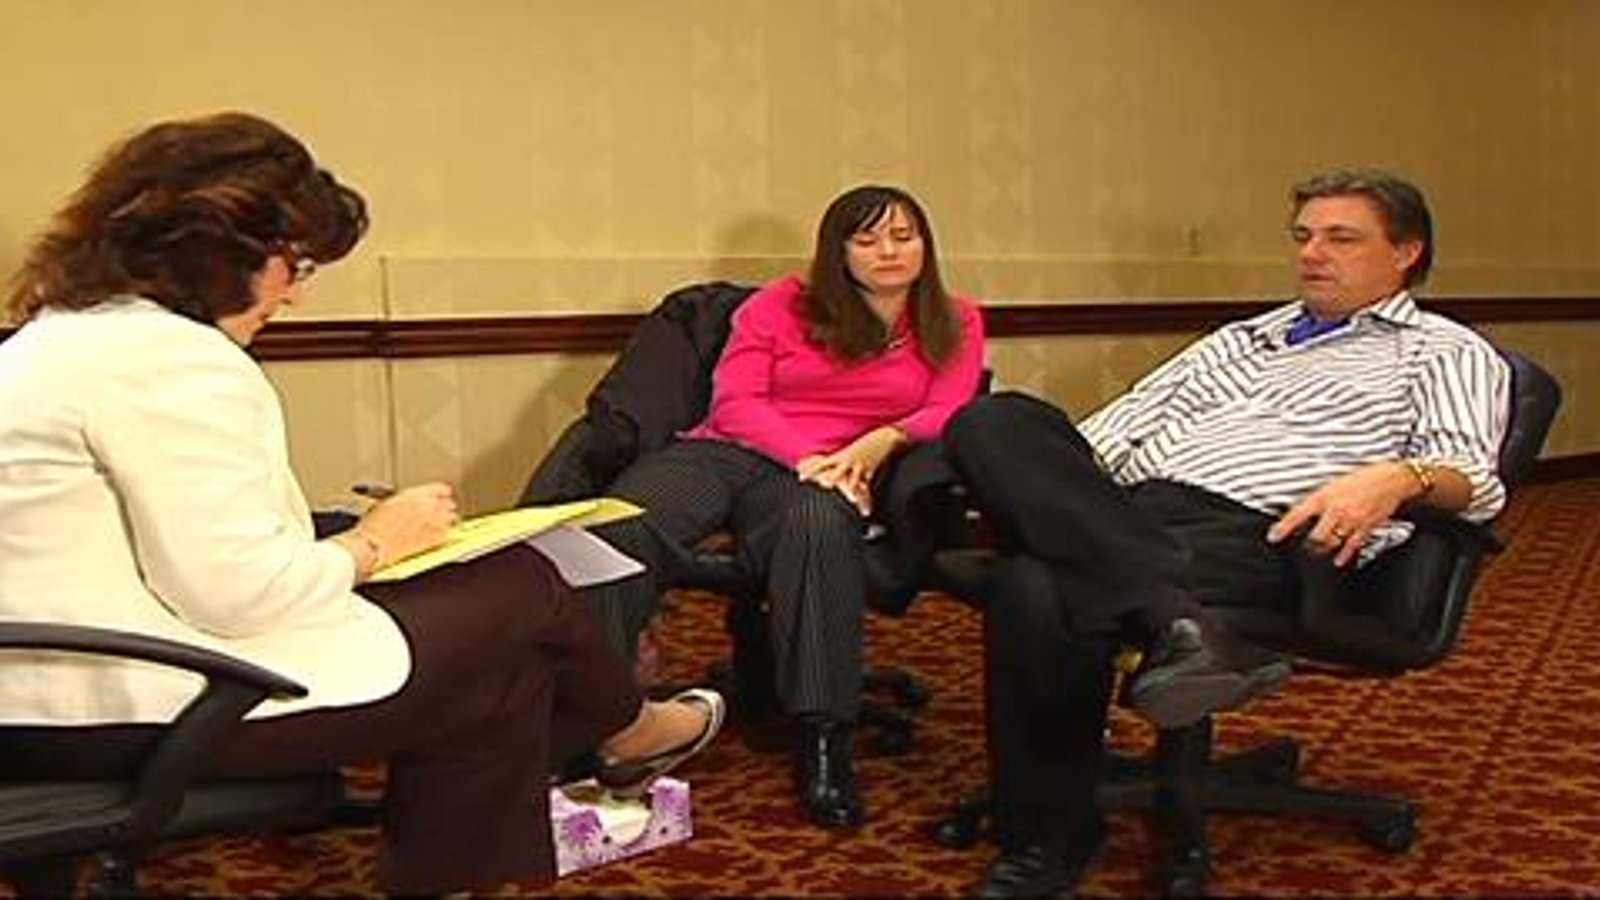 Two Live EFT Sessions in Emotionally Focused Couple Therapy: Re-engaging Withdrawers